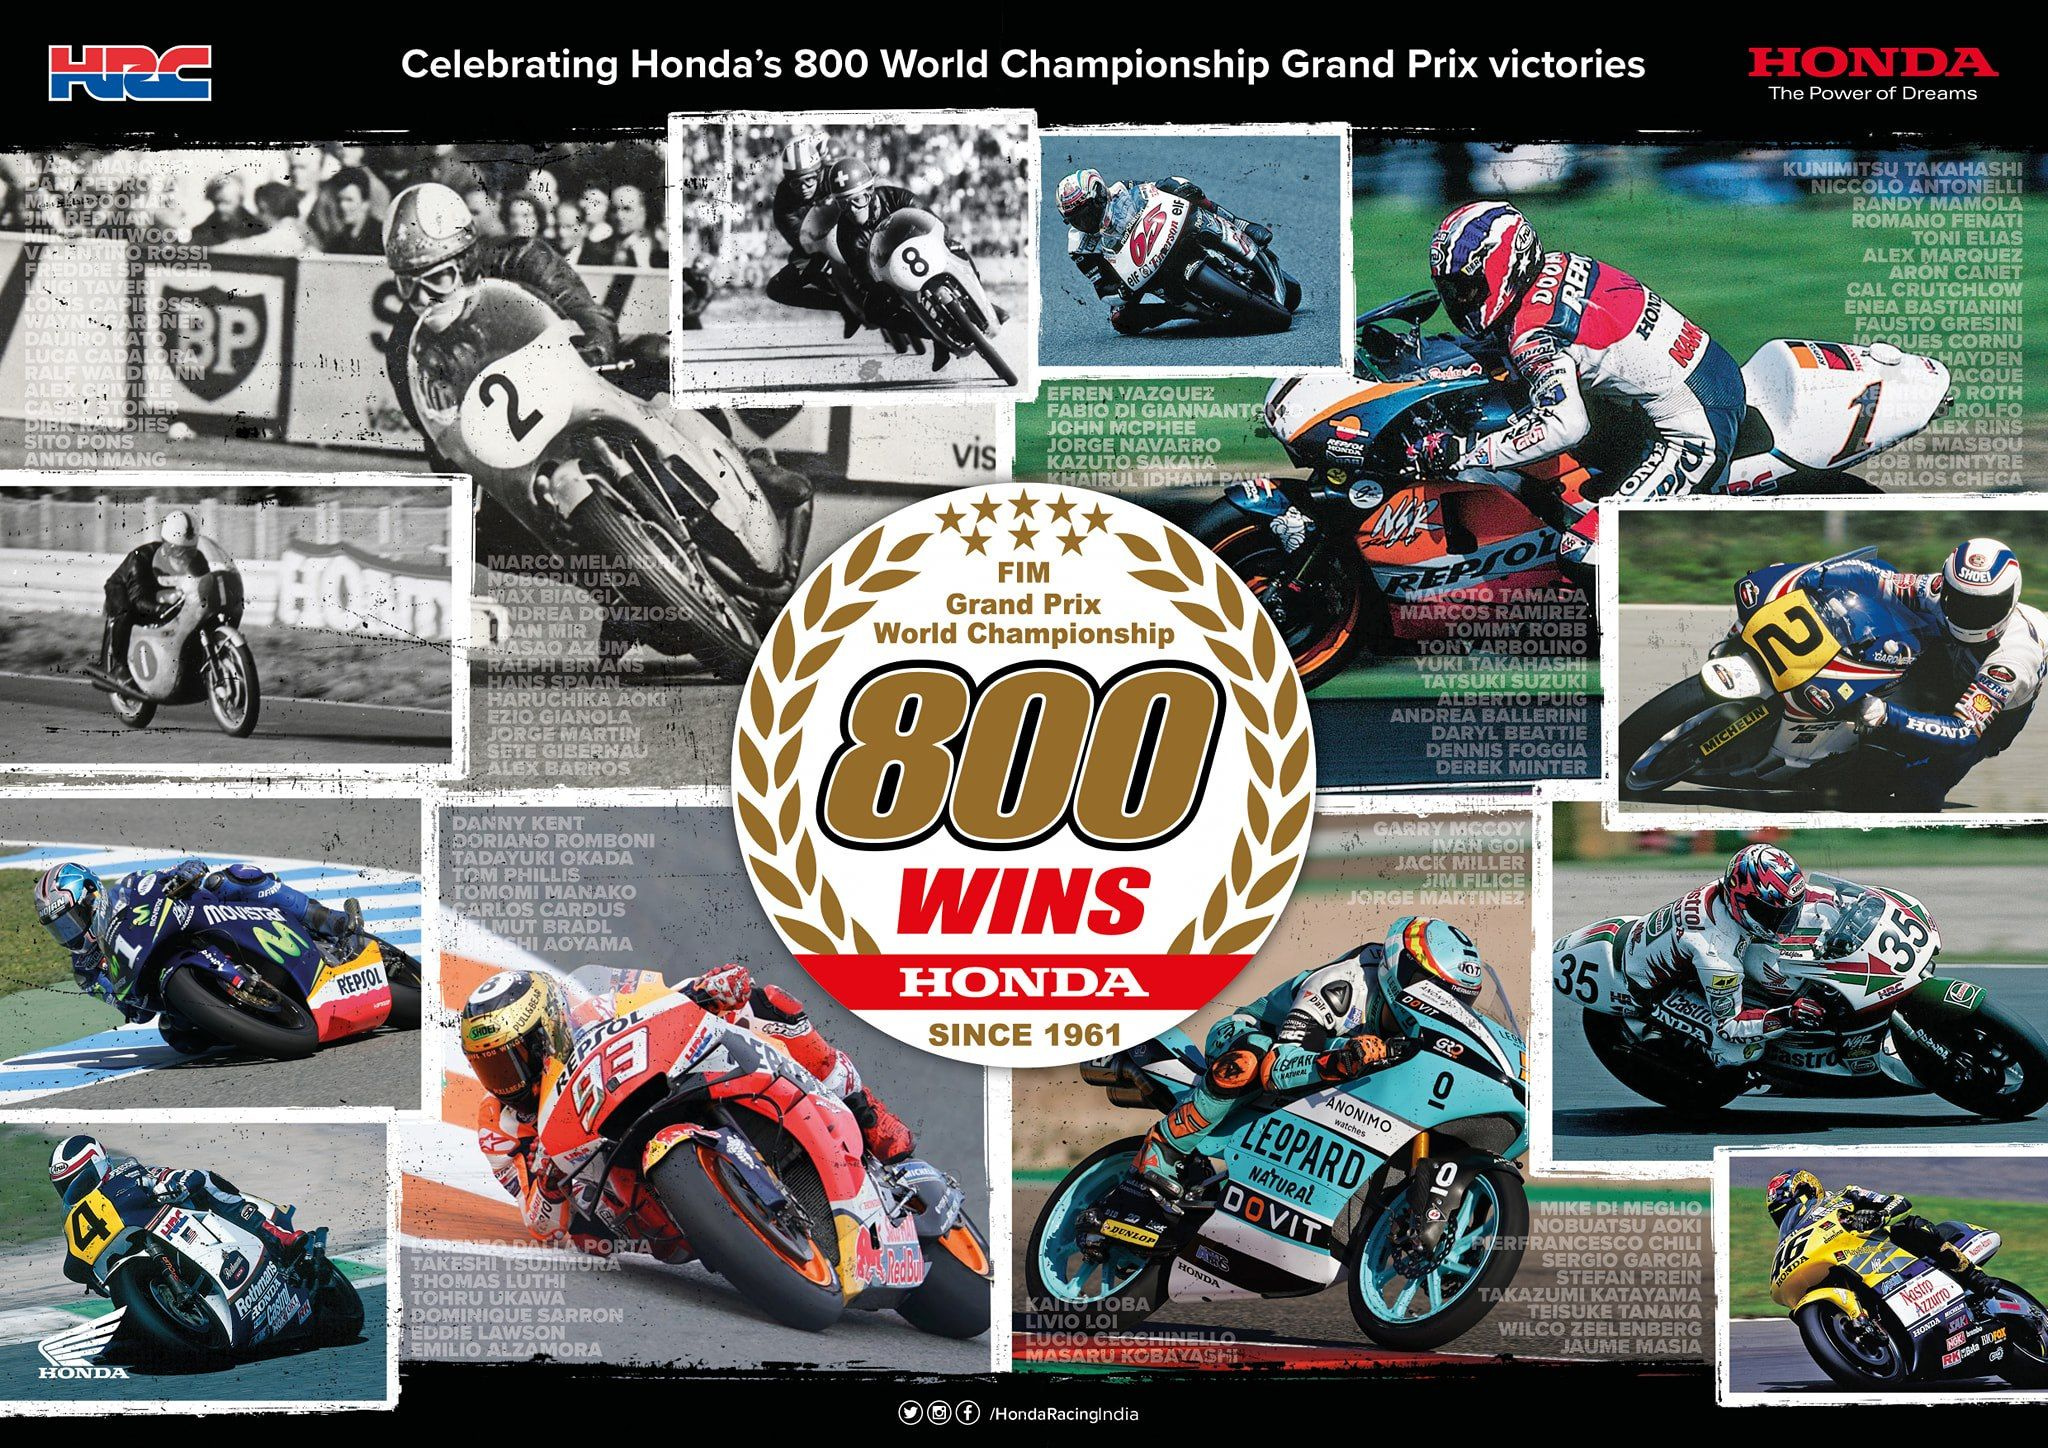 800th Win for Honda Racing !! Book a Honda vehicle and get it delivered from the comfort of your home !! #hondabikes #hondascooters #hondavehicles #800wins #bikerace #buynow #emiavailable #bestoffers #bestemi #reasonablebudget #hondaxblade #hondahornet #racebikes